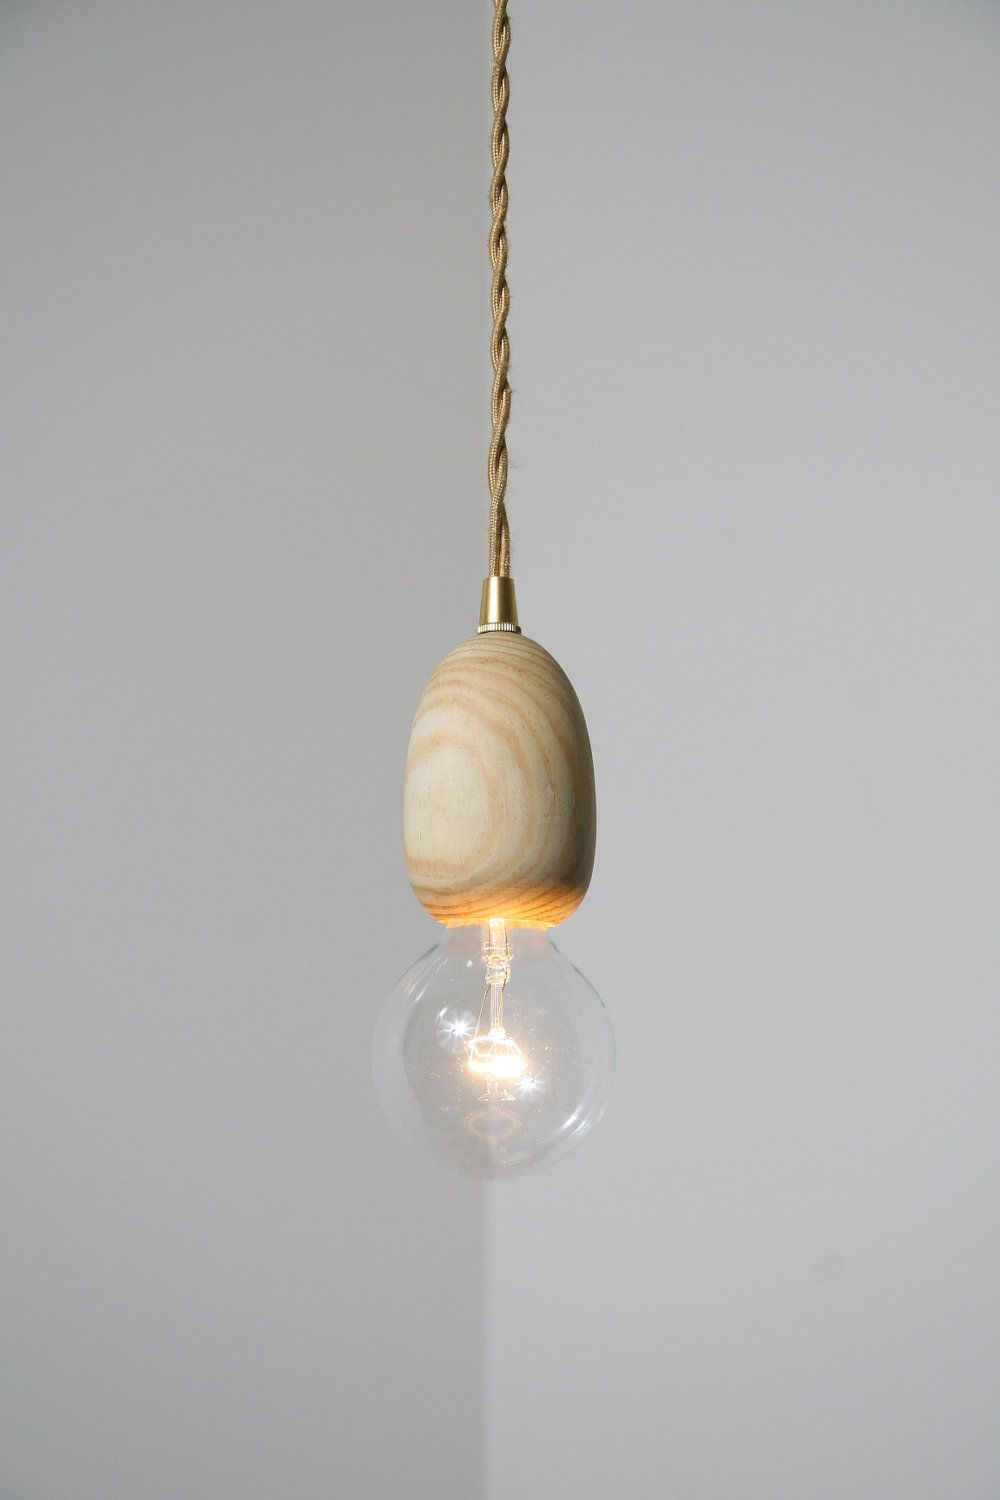 Mushroom handmade wood pendant light brass cloth wire light